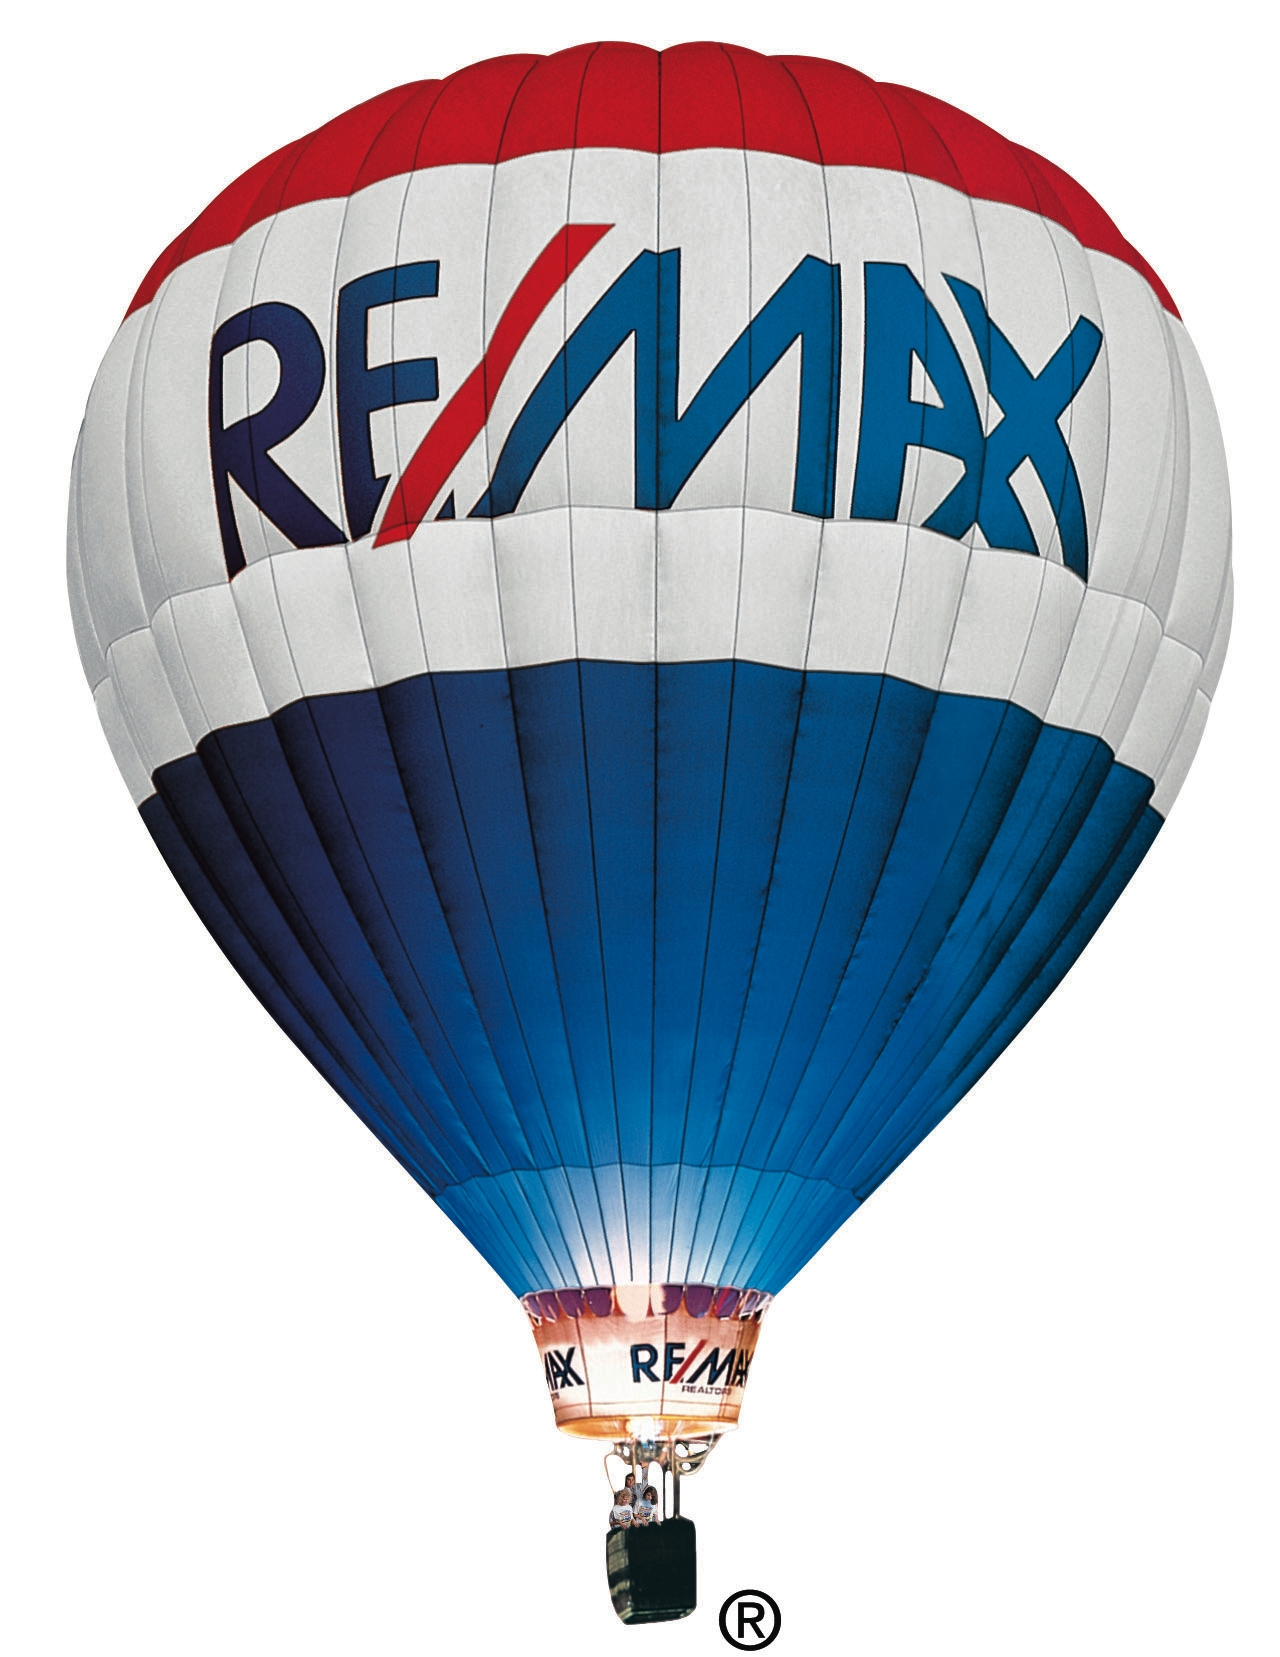 REMAX - Creekside Park The Woodlands